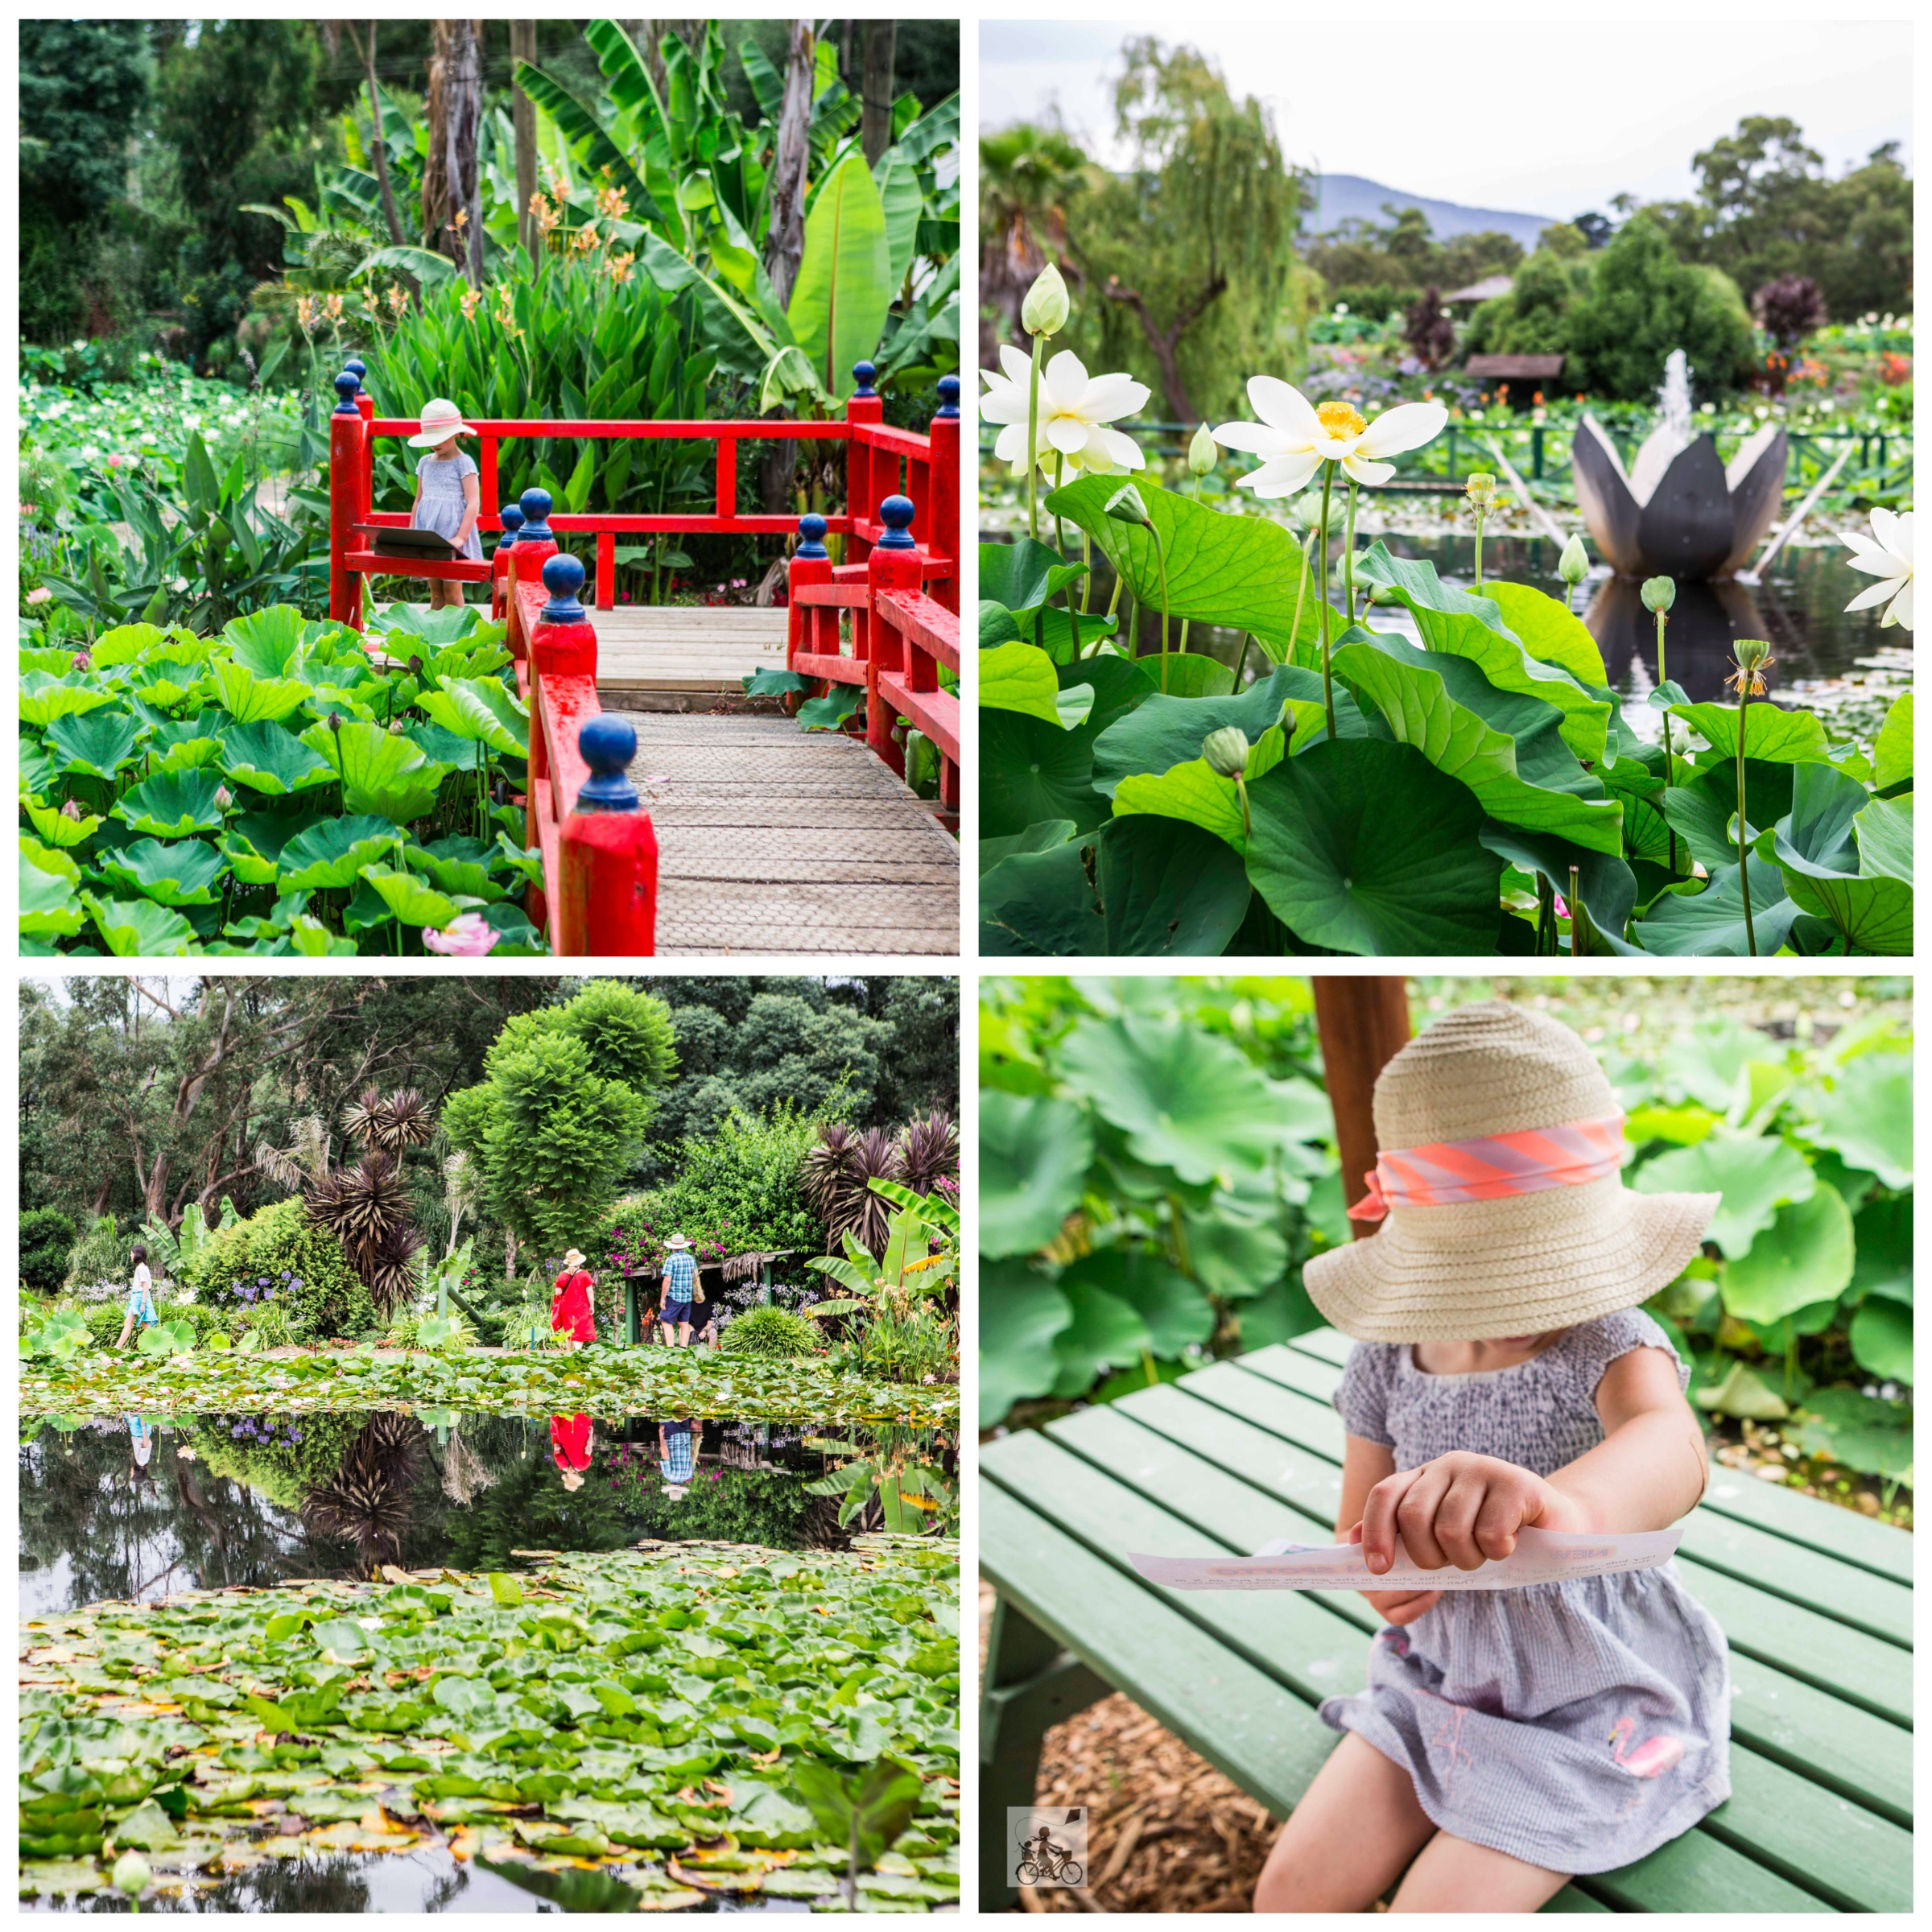 21 Blue Lotus Water Gardens 2019 - Mamma Knows East (1 of 74).jpg